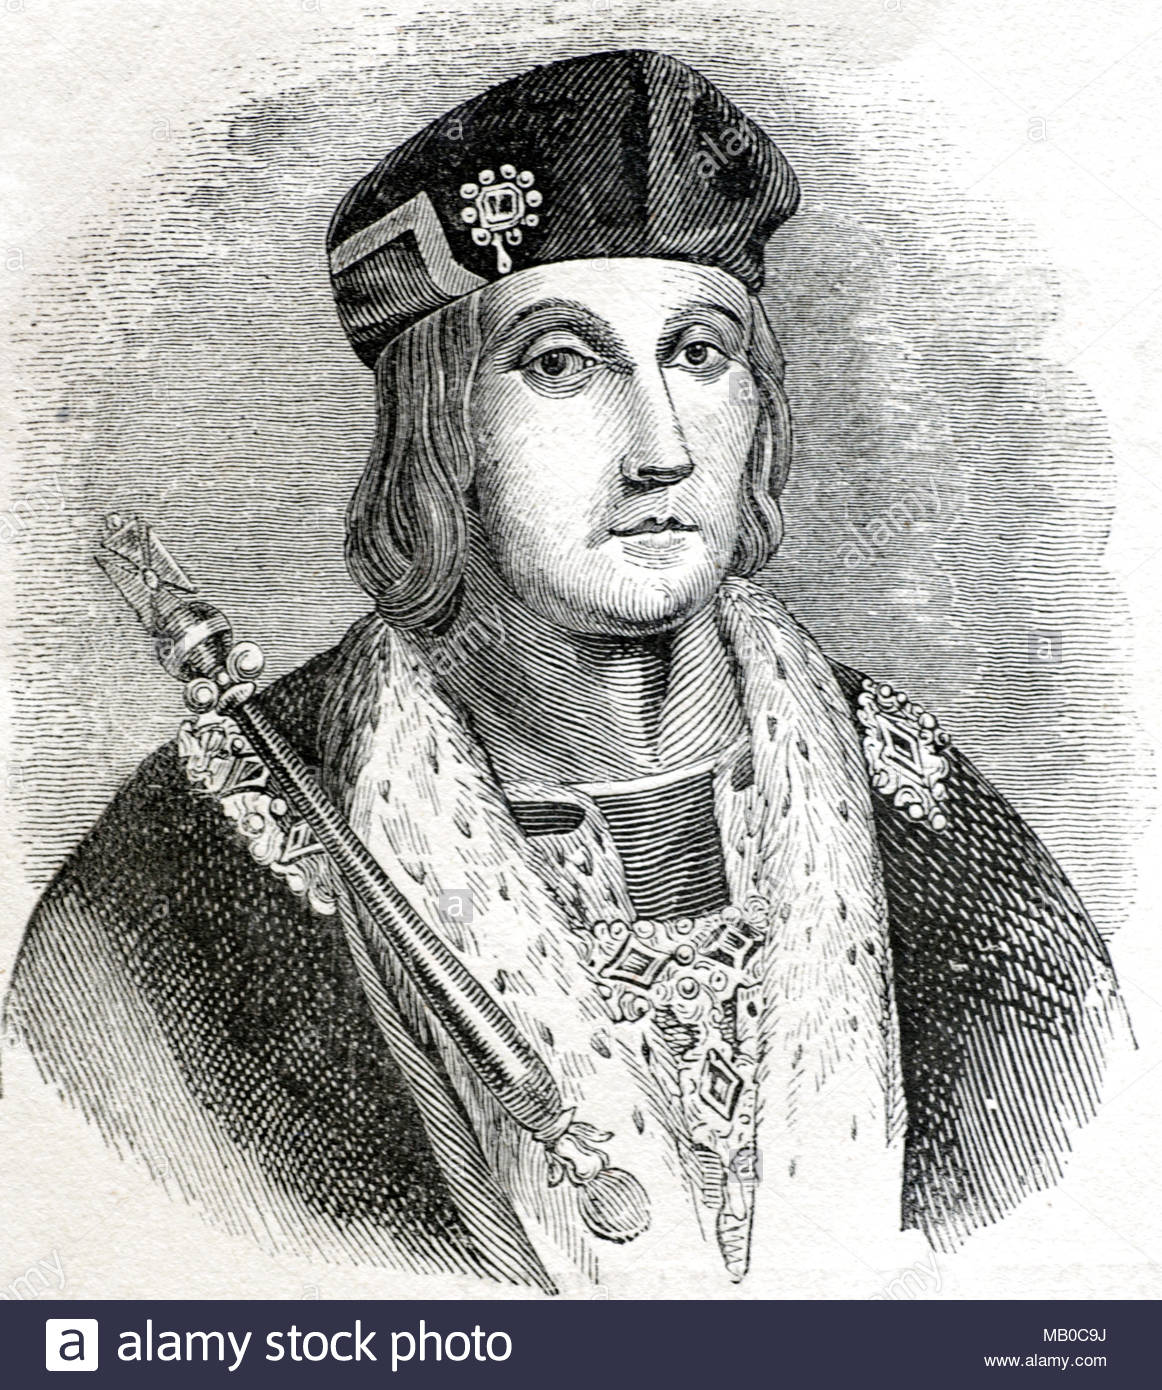 King Henry VII, 1457 – 1509, was King of England and Lord of Ireland from 1485 until his death in 1509, first monarch of the House of Tudor, antique illustration from circa 1860 - Stock Image